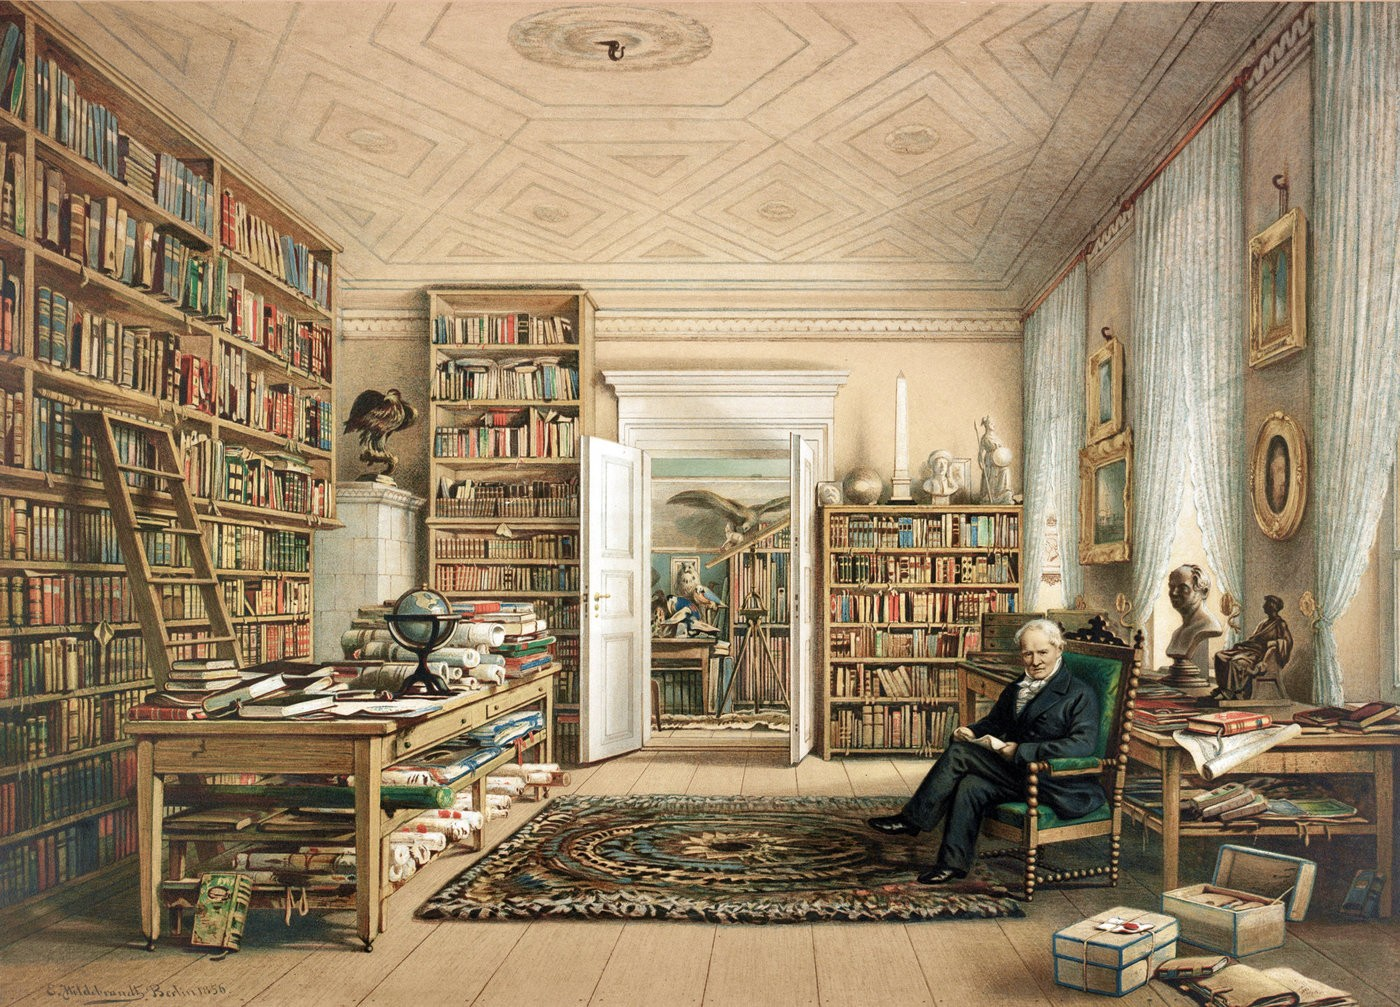 Medium humboldt library berlin 1856